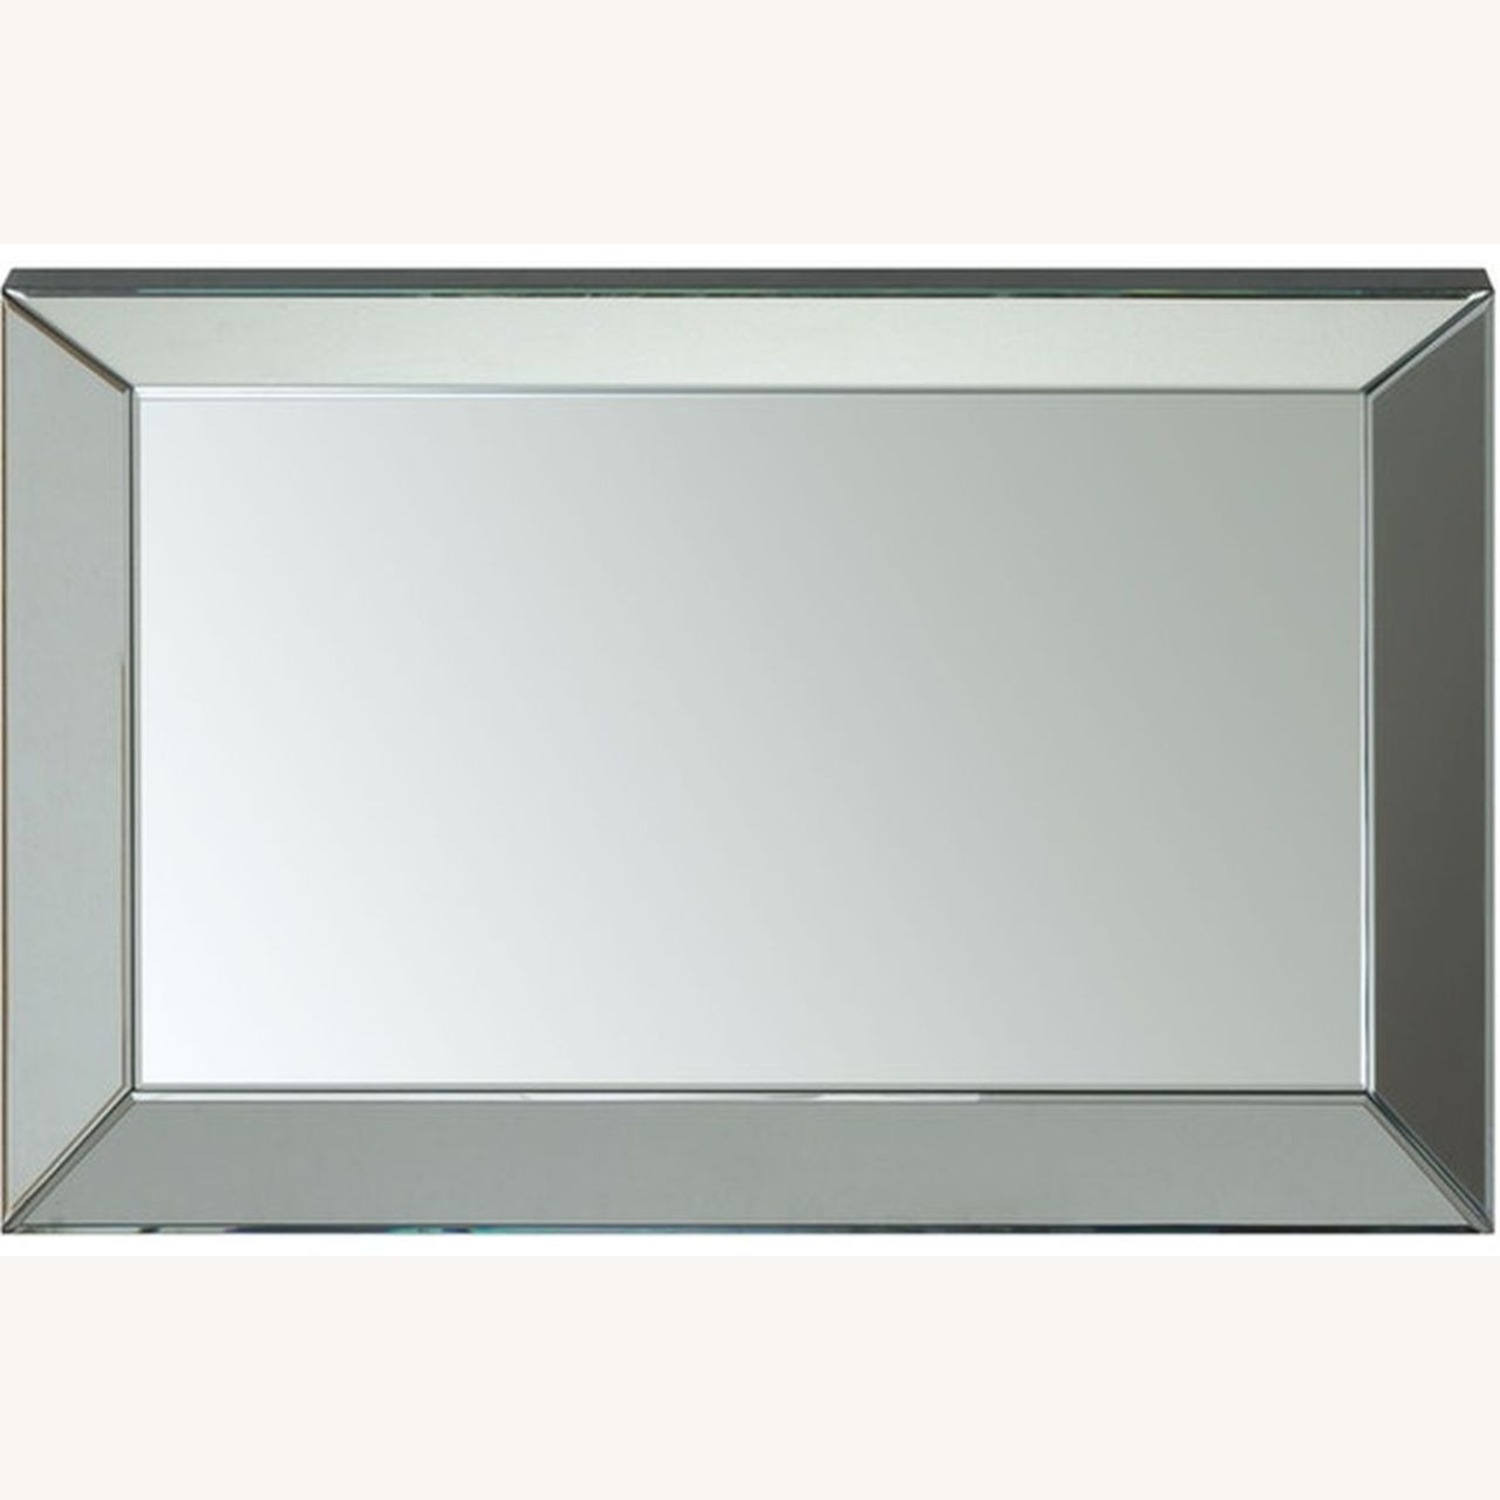 Rectangular Clear Mirror W/ Beveled Edges - image-2